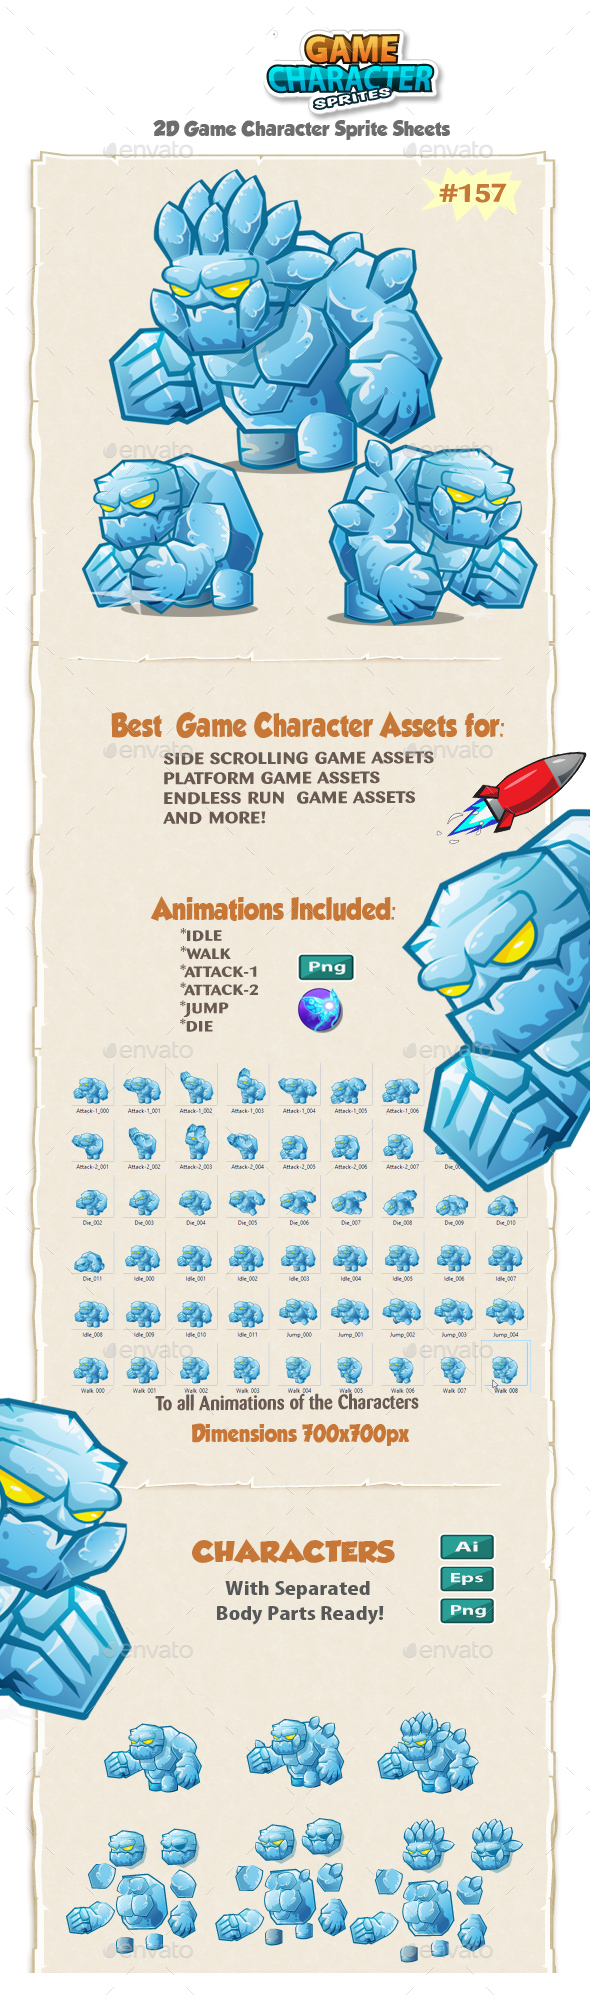 Monster Ice Giant 2D Game Character Sprites 157 - Sprites Game Assets